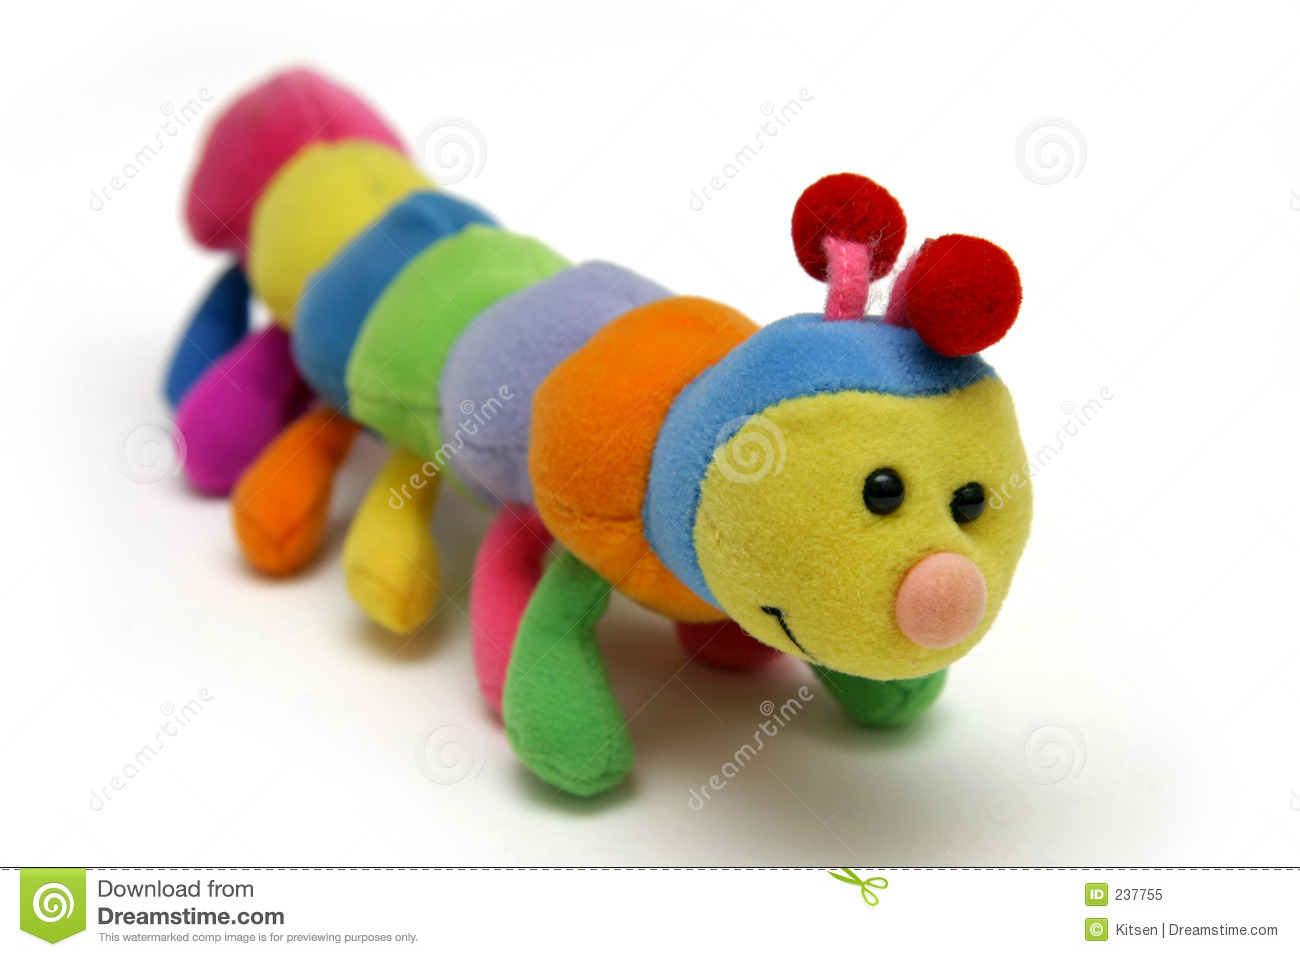 Child's Caterpillar Soft-toy Royalty Free Stock Photo - Image: 237755